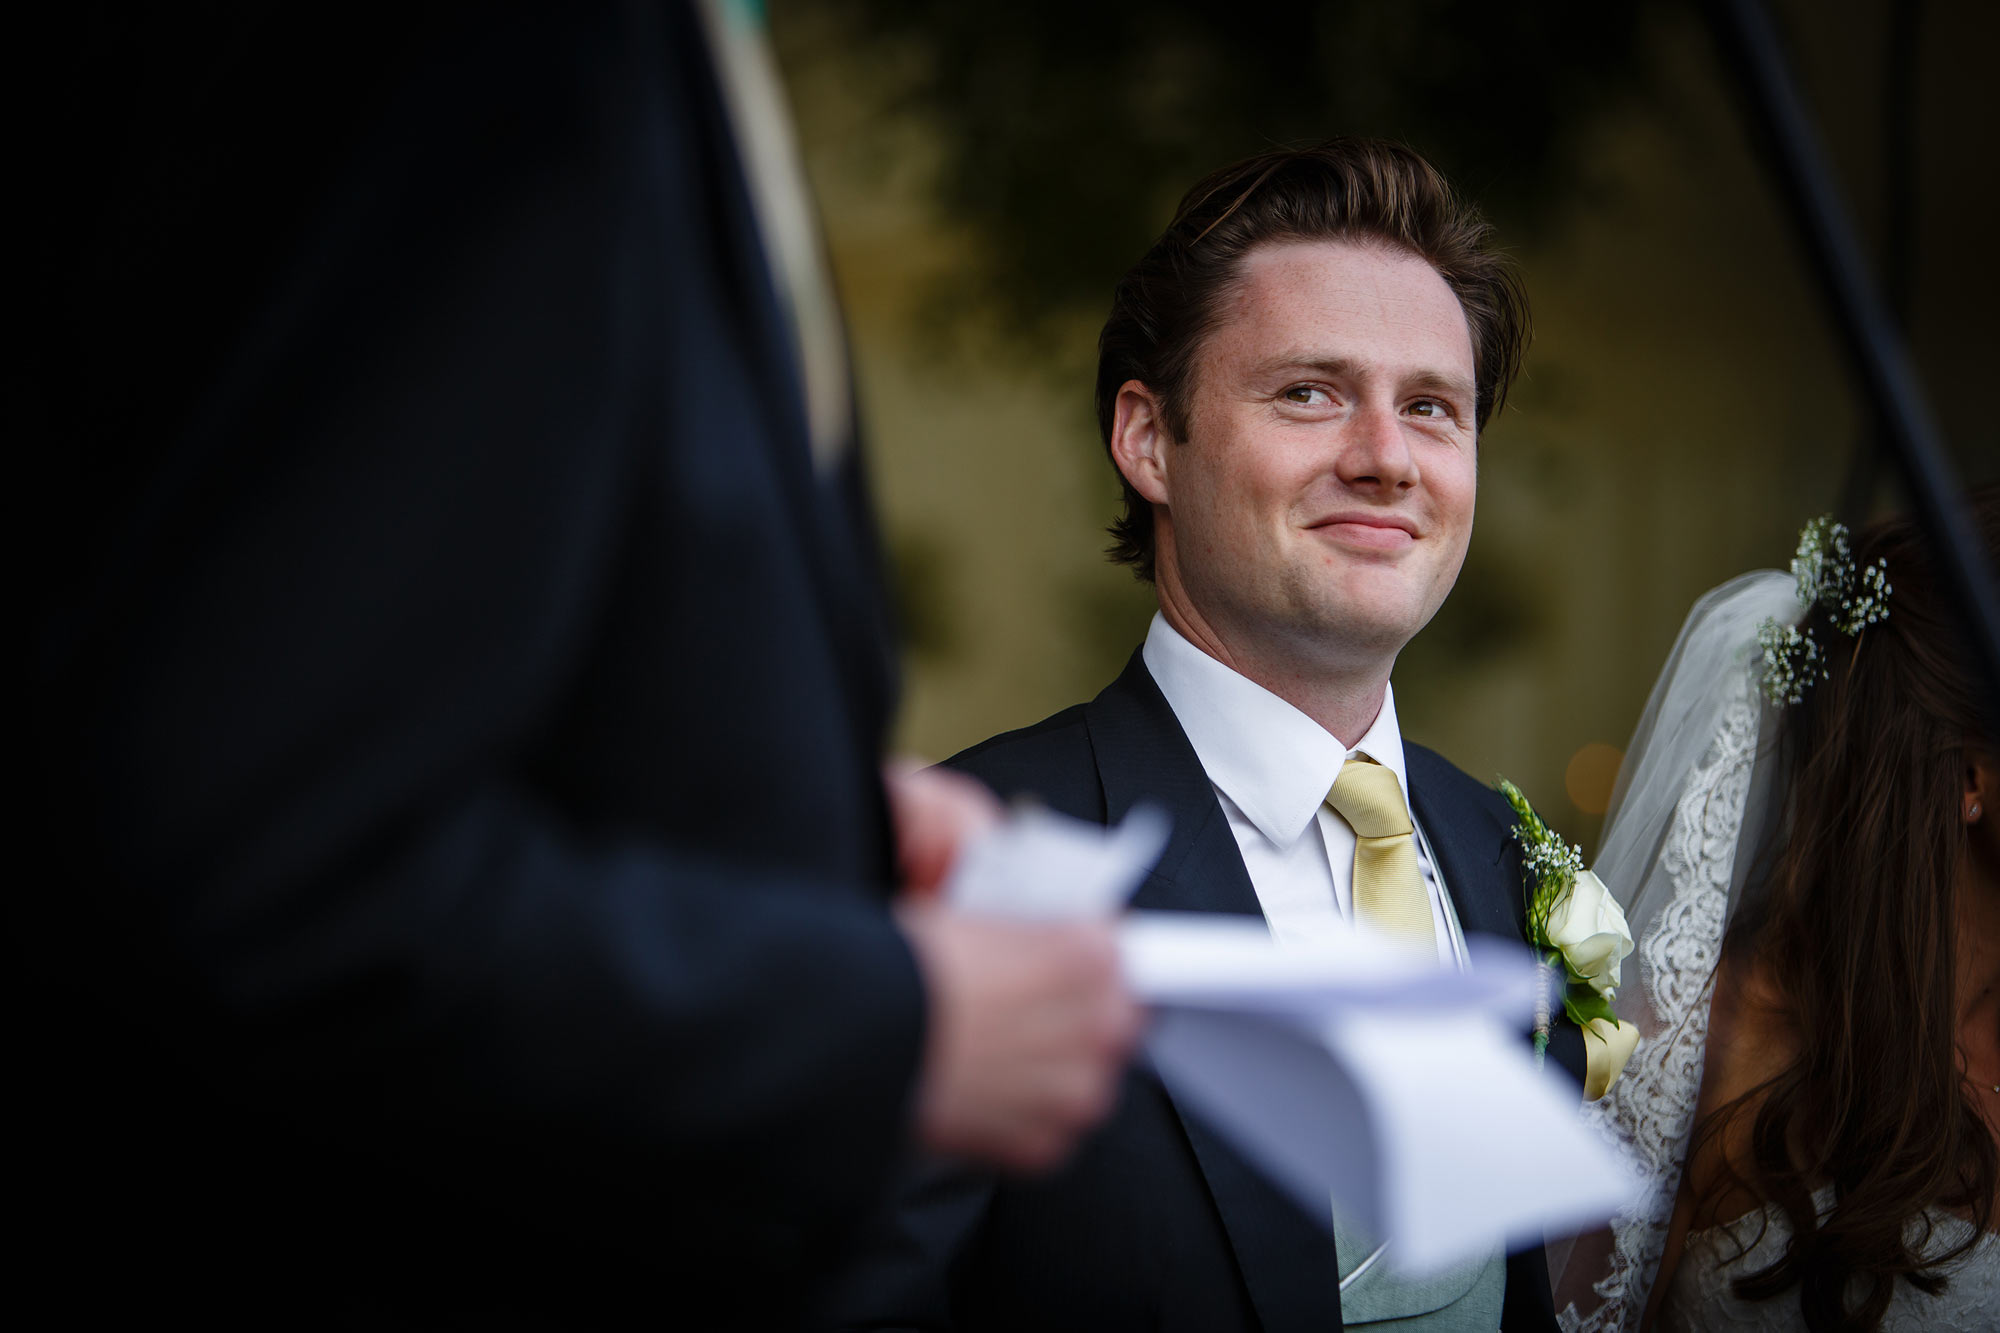 the groom listens to speech